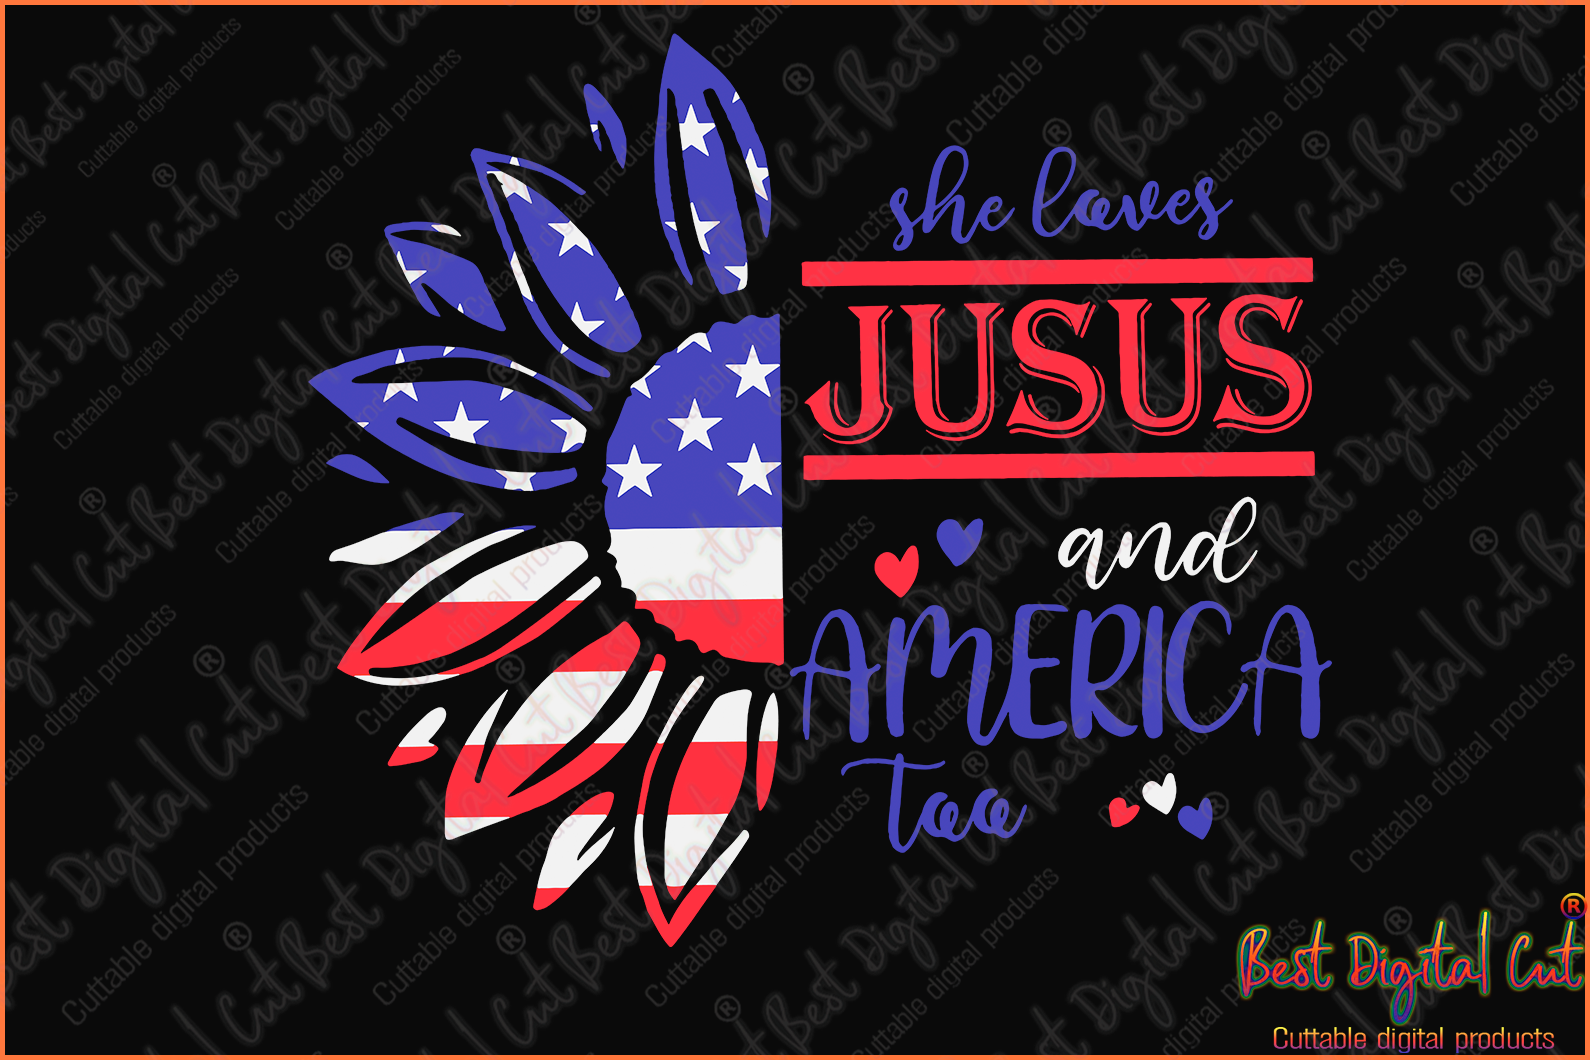 She loves jusus and America too svg,sunflowers svg,American flag svg,Happy 4th of July 2020 svg,freedom day svg,love beer svg,American holiday,1776 July 4th,independence day svgs,black lives matter shirt,black history month